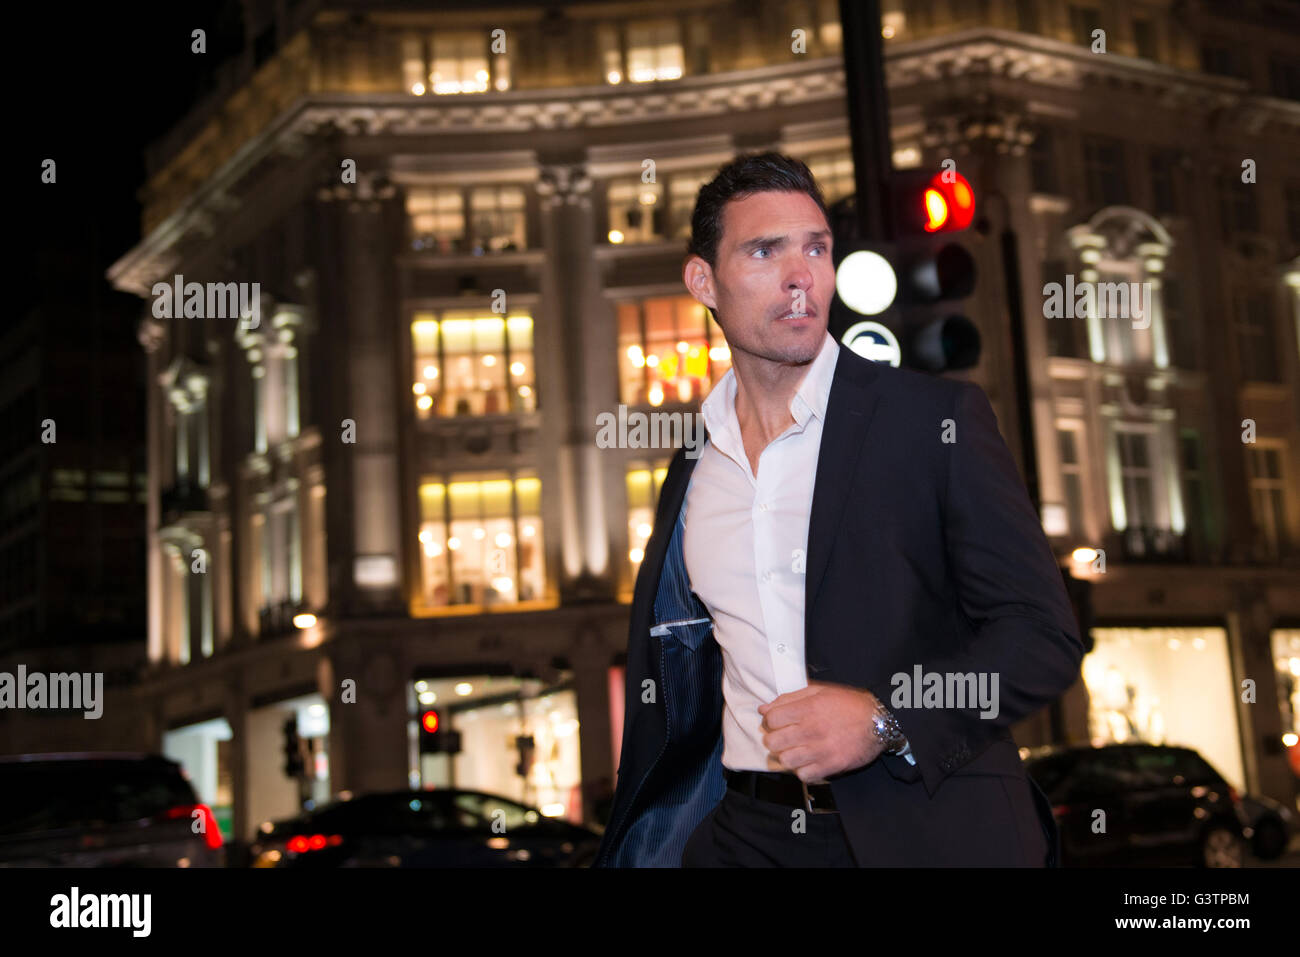 A smartly dressed man walking at Piccadilly Circus in London. - Stock Image